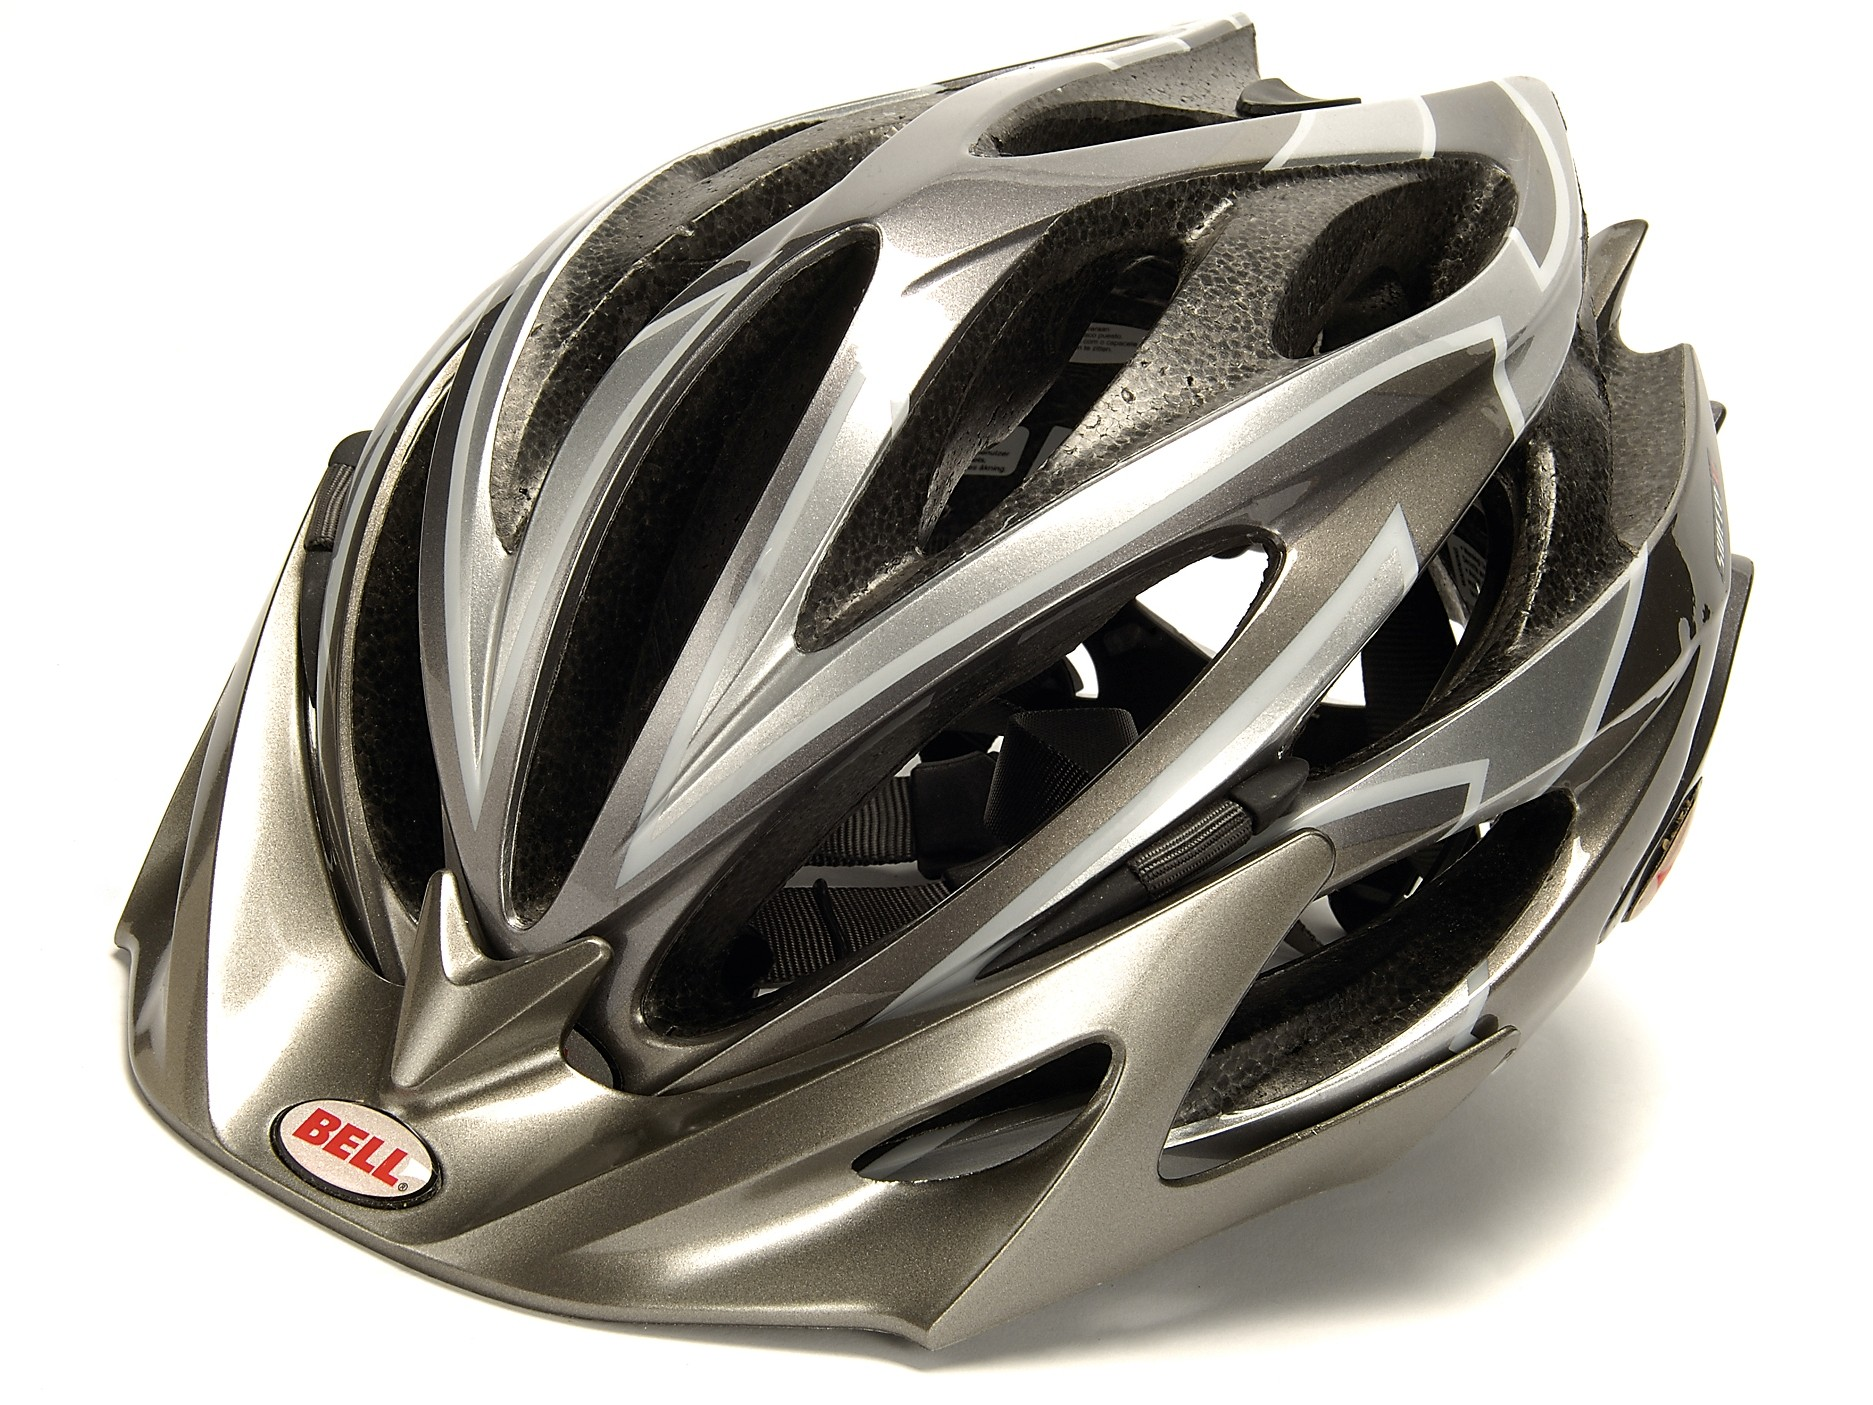 A cycling helmet is a ventilated polystyrene shell that's intended to provide some protection to the